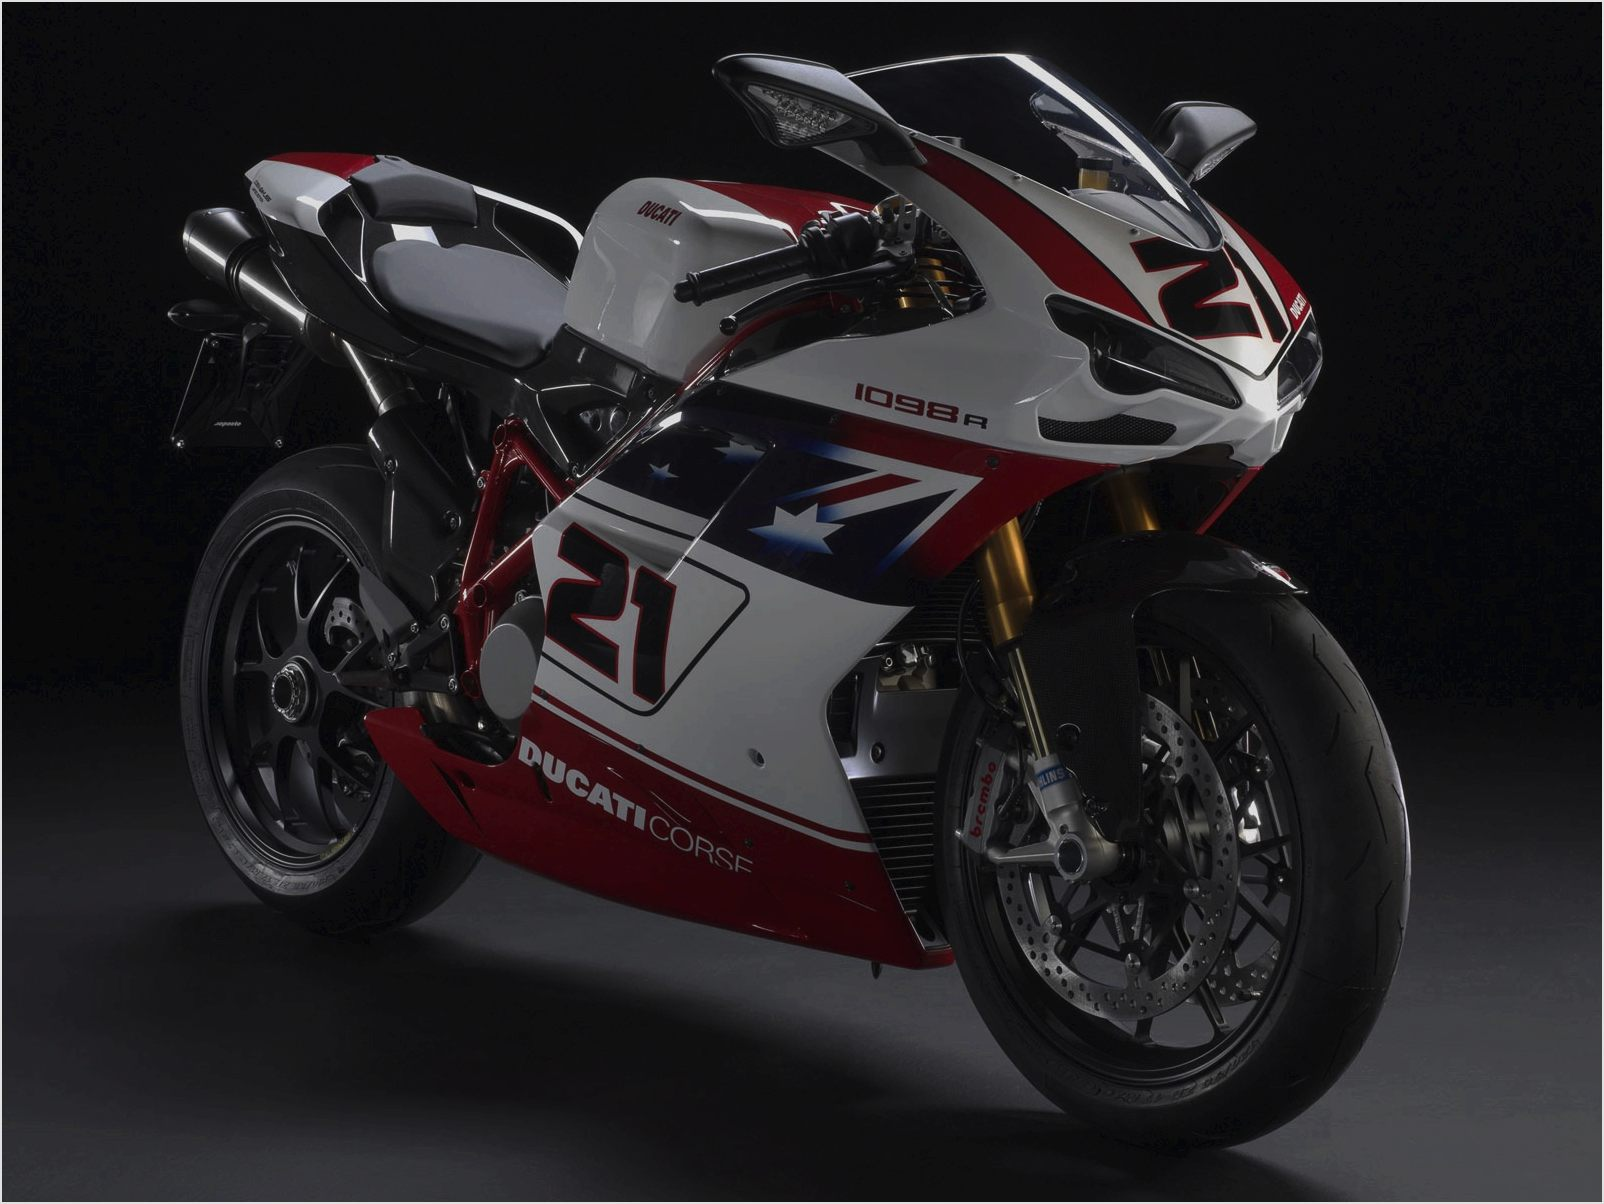 Ducati Superbike 1098 R Bayliss Limited Edition 2009 wallpapers #12436